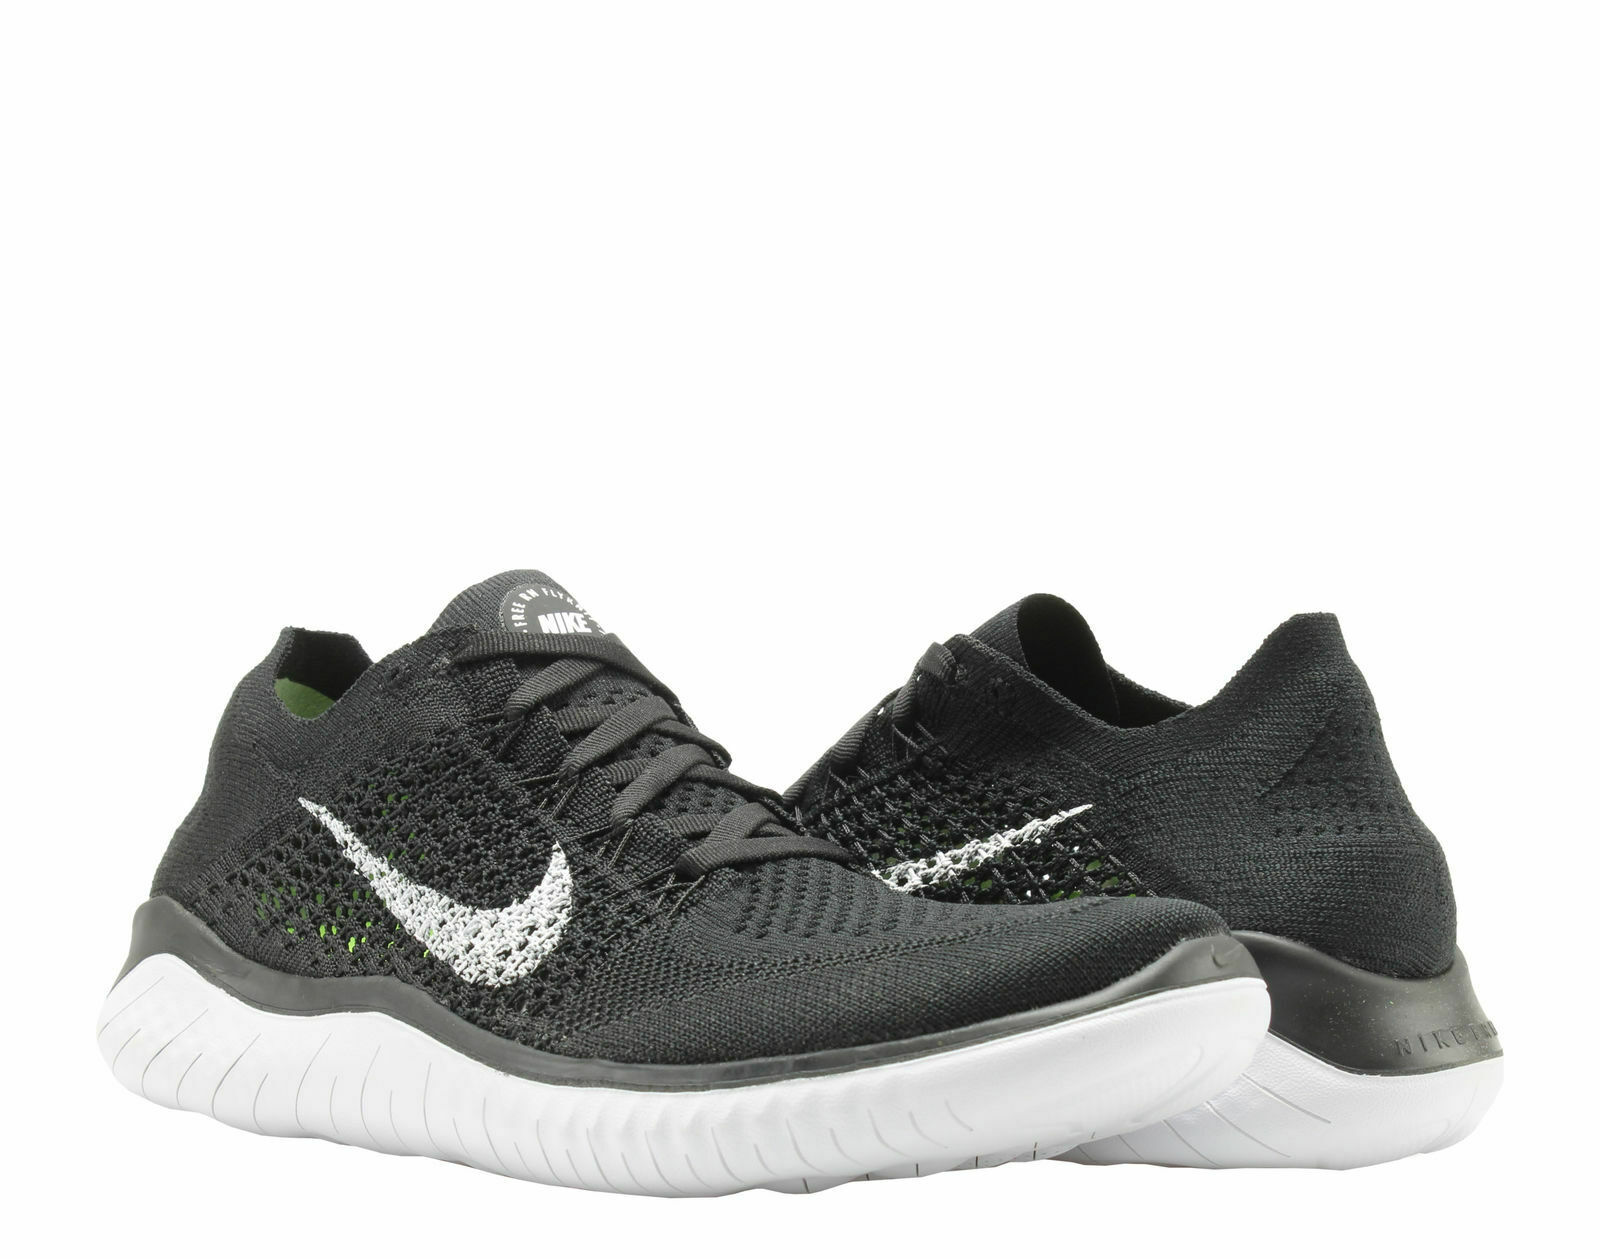 the latest e8fdc 265f4 Nike Free RN Flyknit 2018 Black/White Men's Running Shoes 942838-001 Pick A  Size